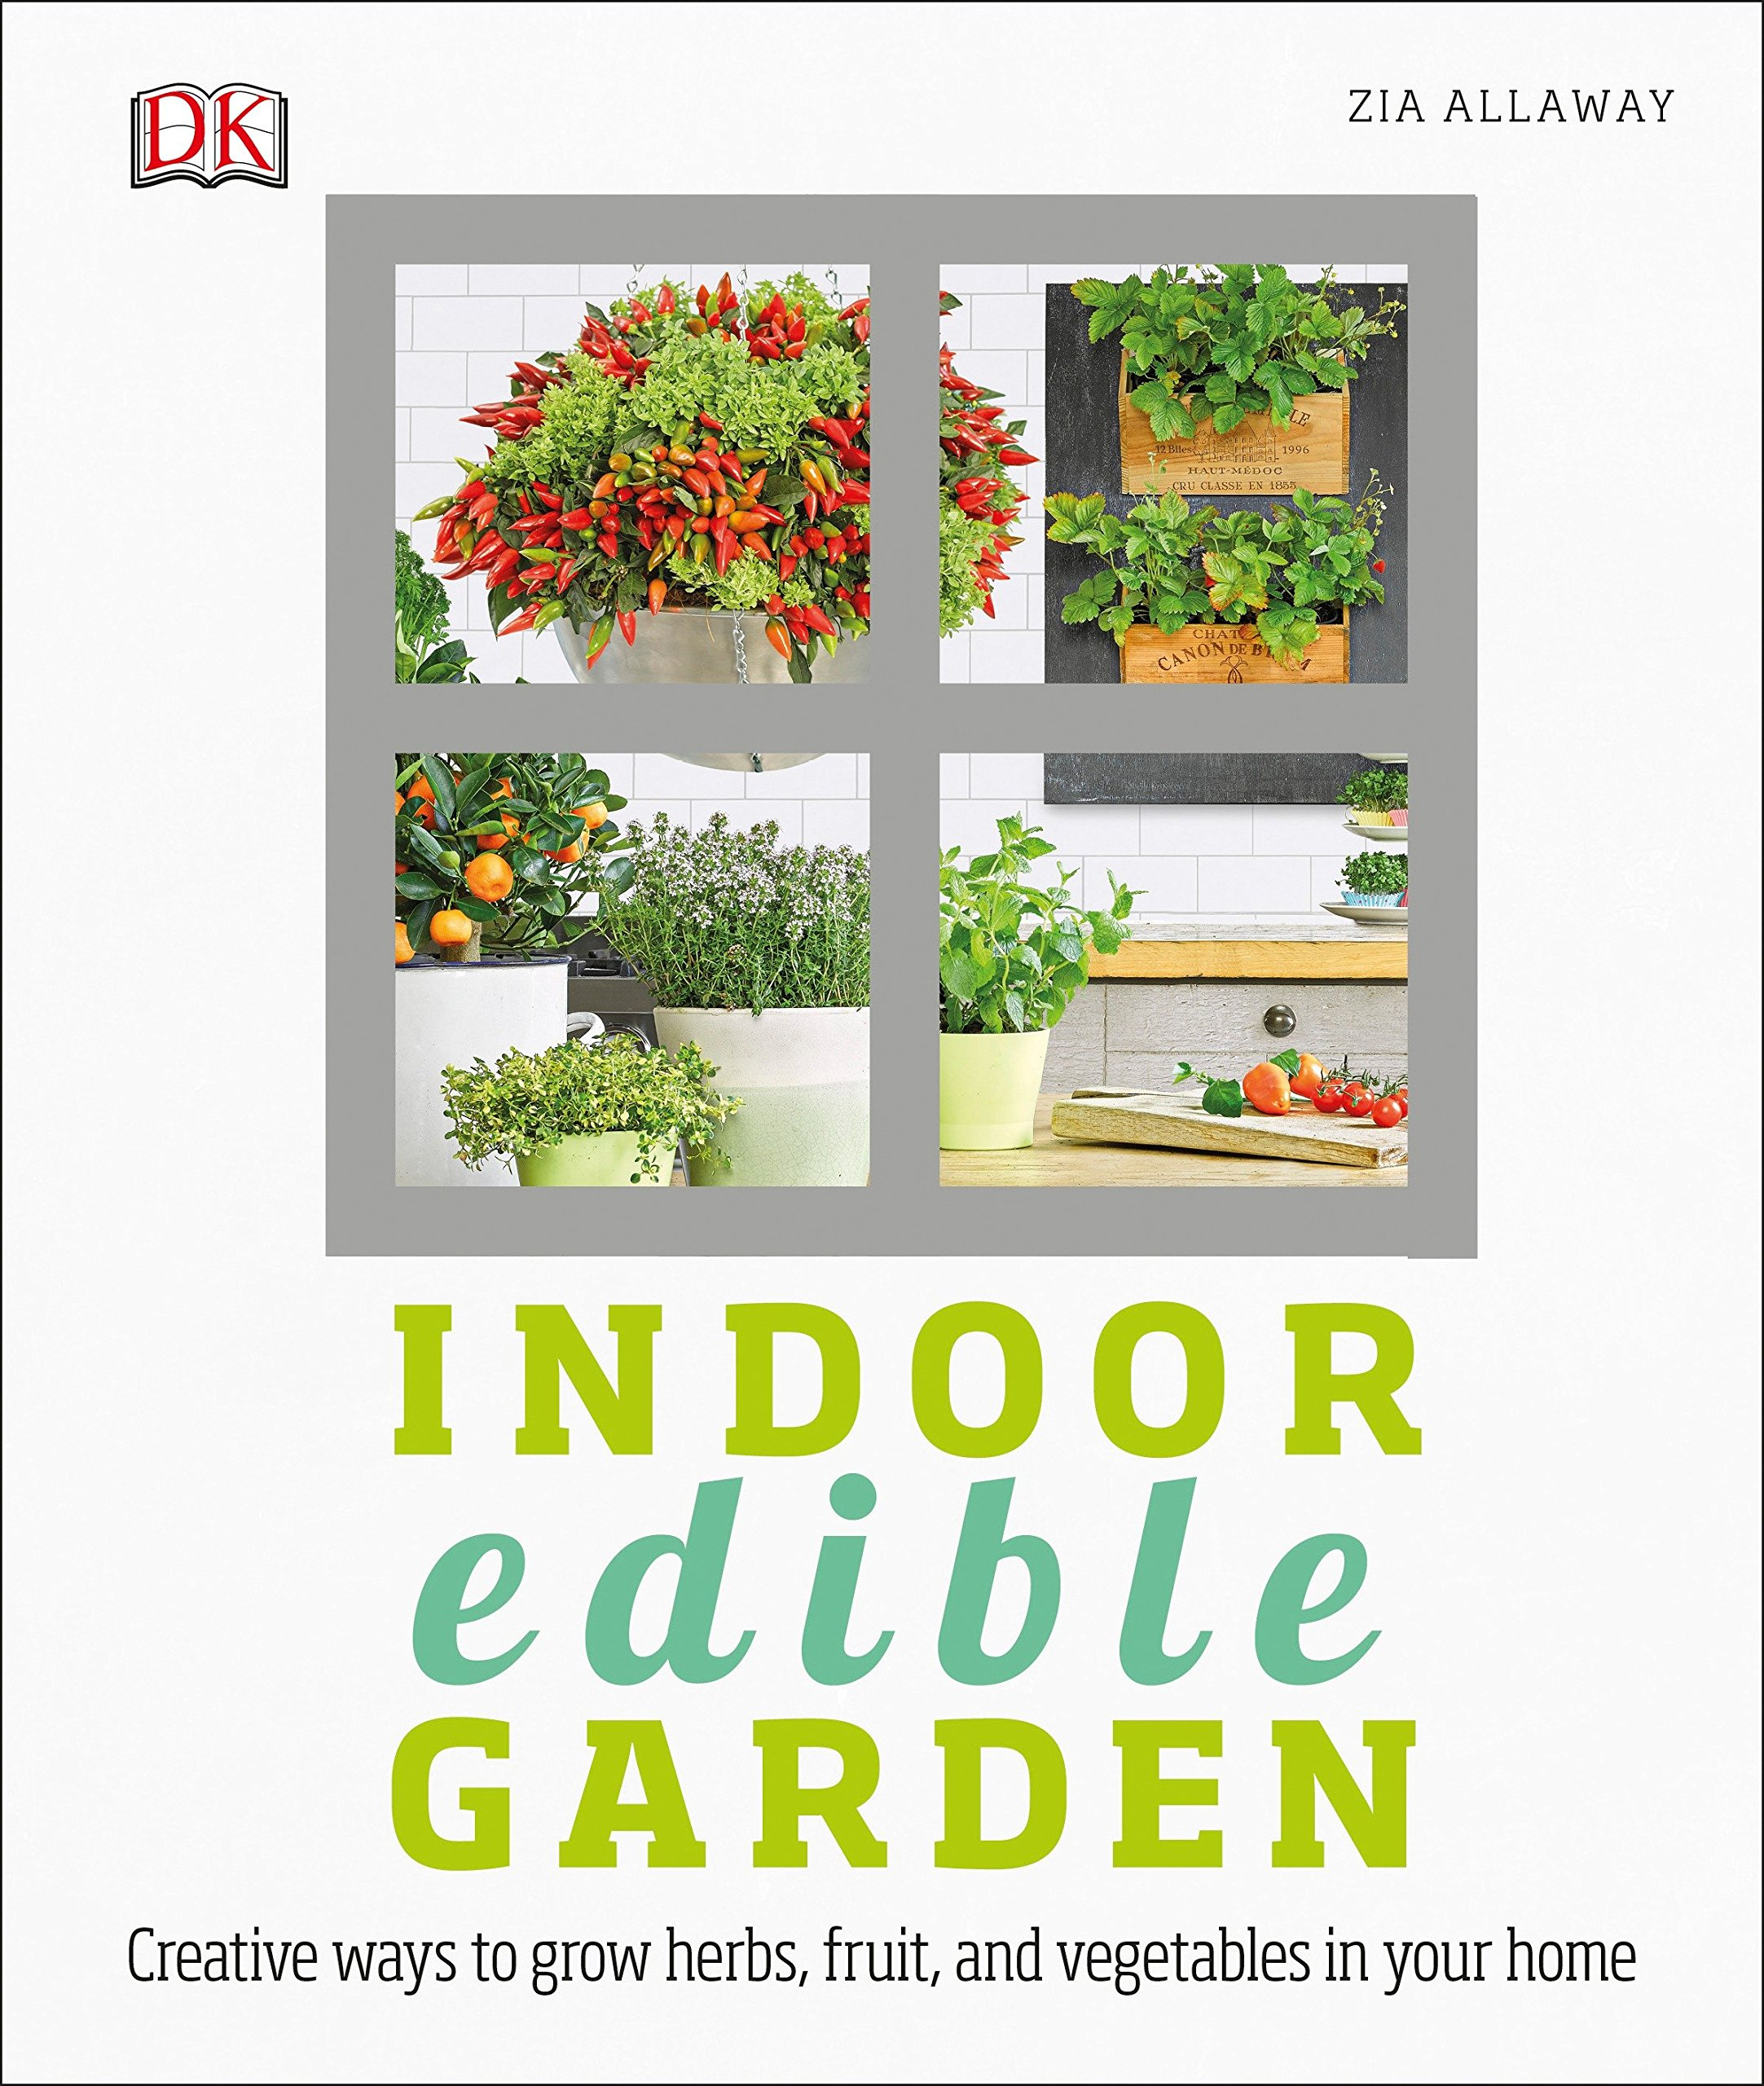 Indoor Edible Garden: Creative Ways to Grow Herbs, Fruits, and Vegetables in Your Home by DK